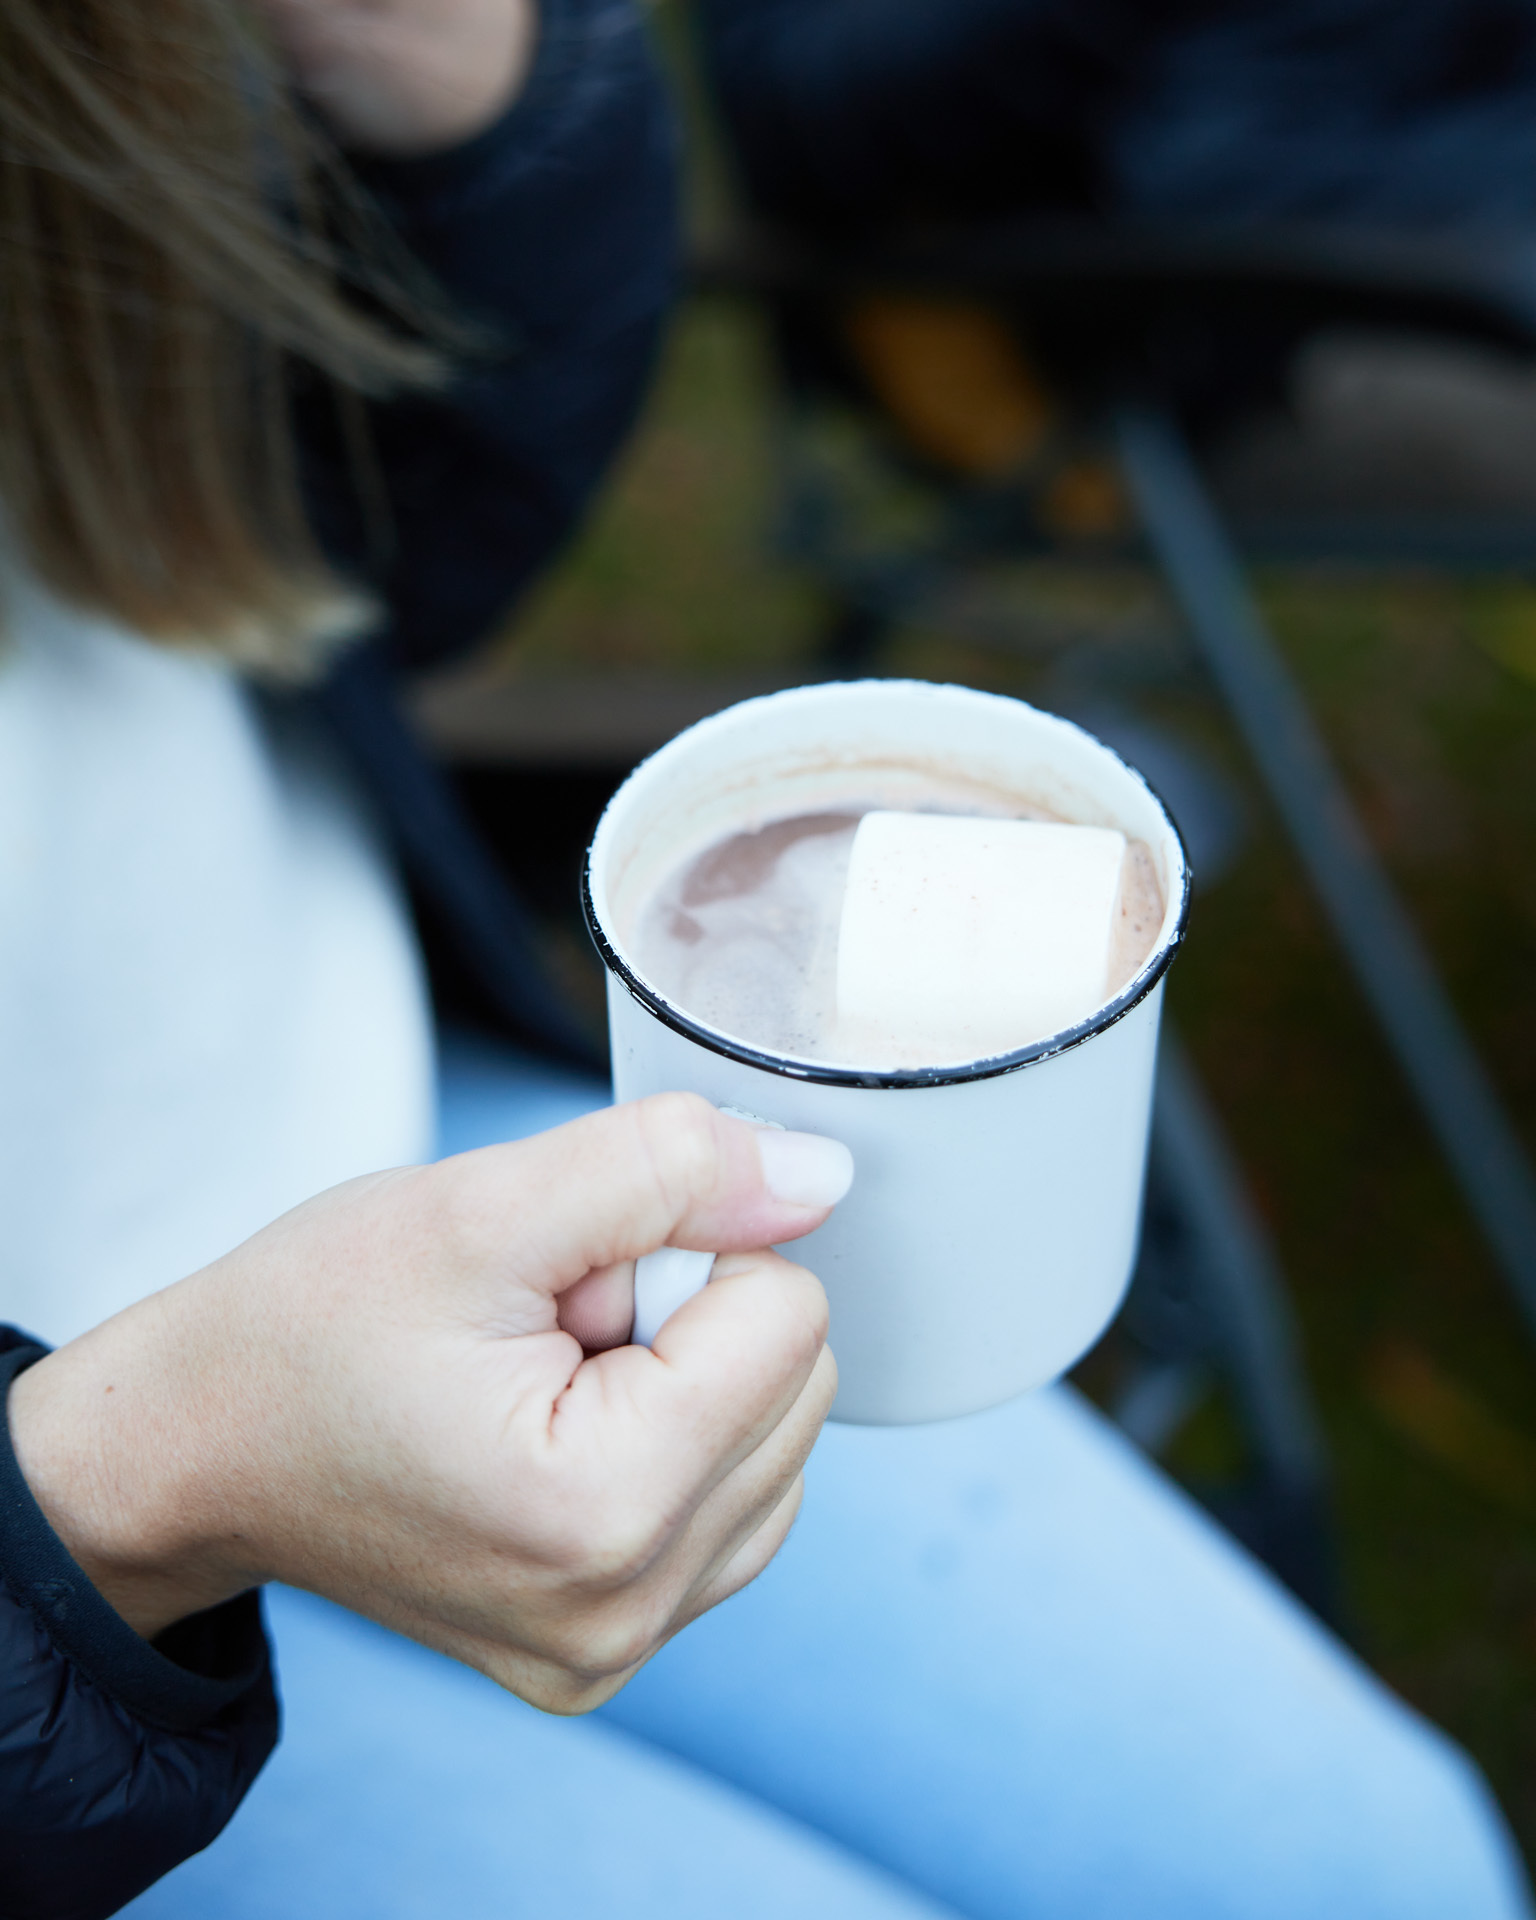 How To Set Up Your Own Glamping Experience, Brody Webb, dometic hayman 4 air, inflatable tent, mug, hot choccy, marshmallow